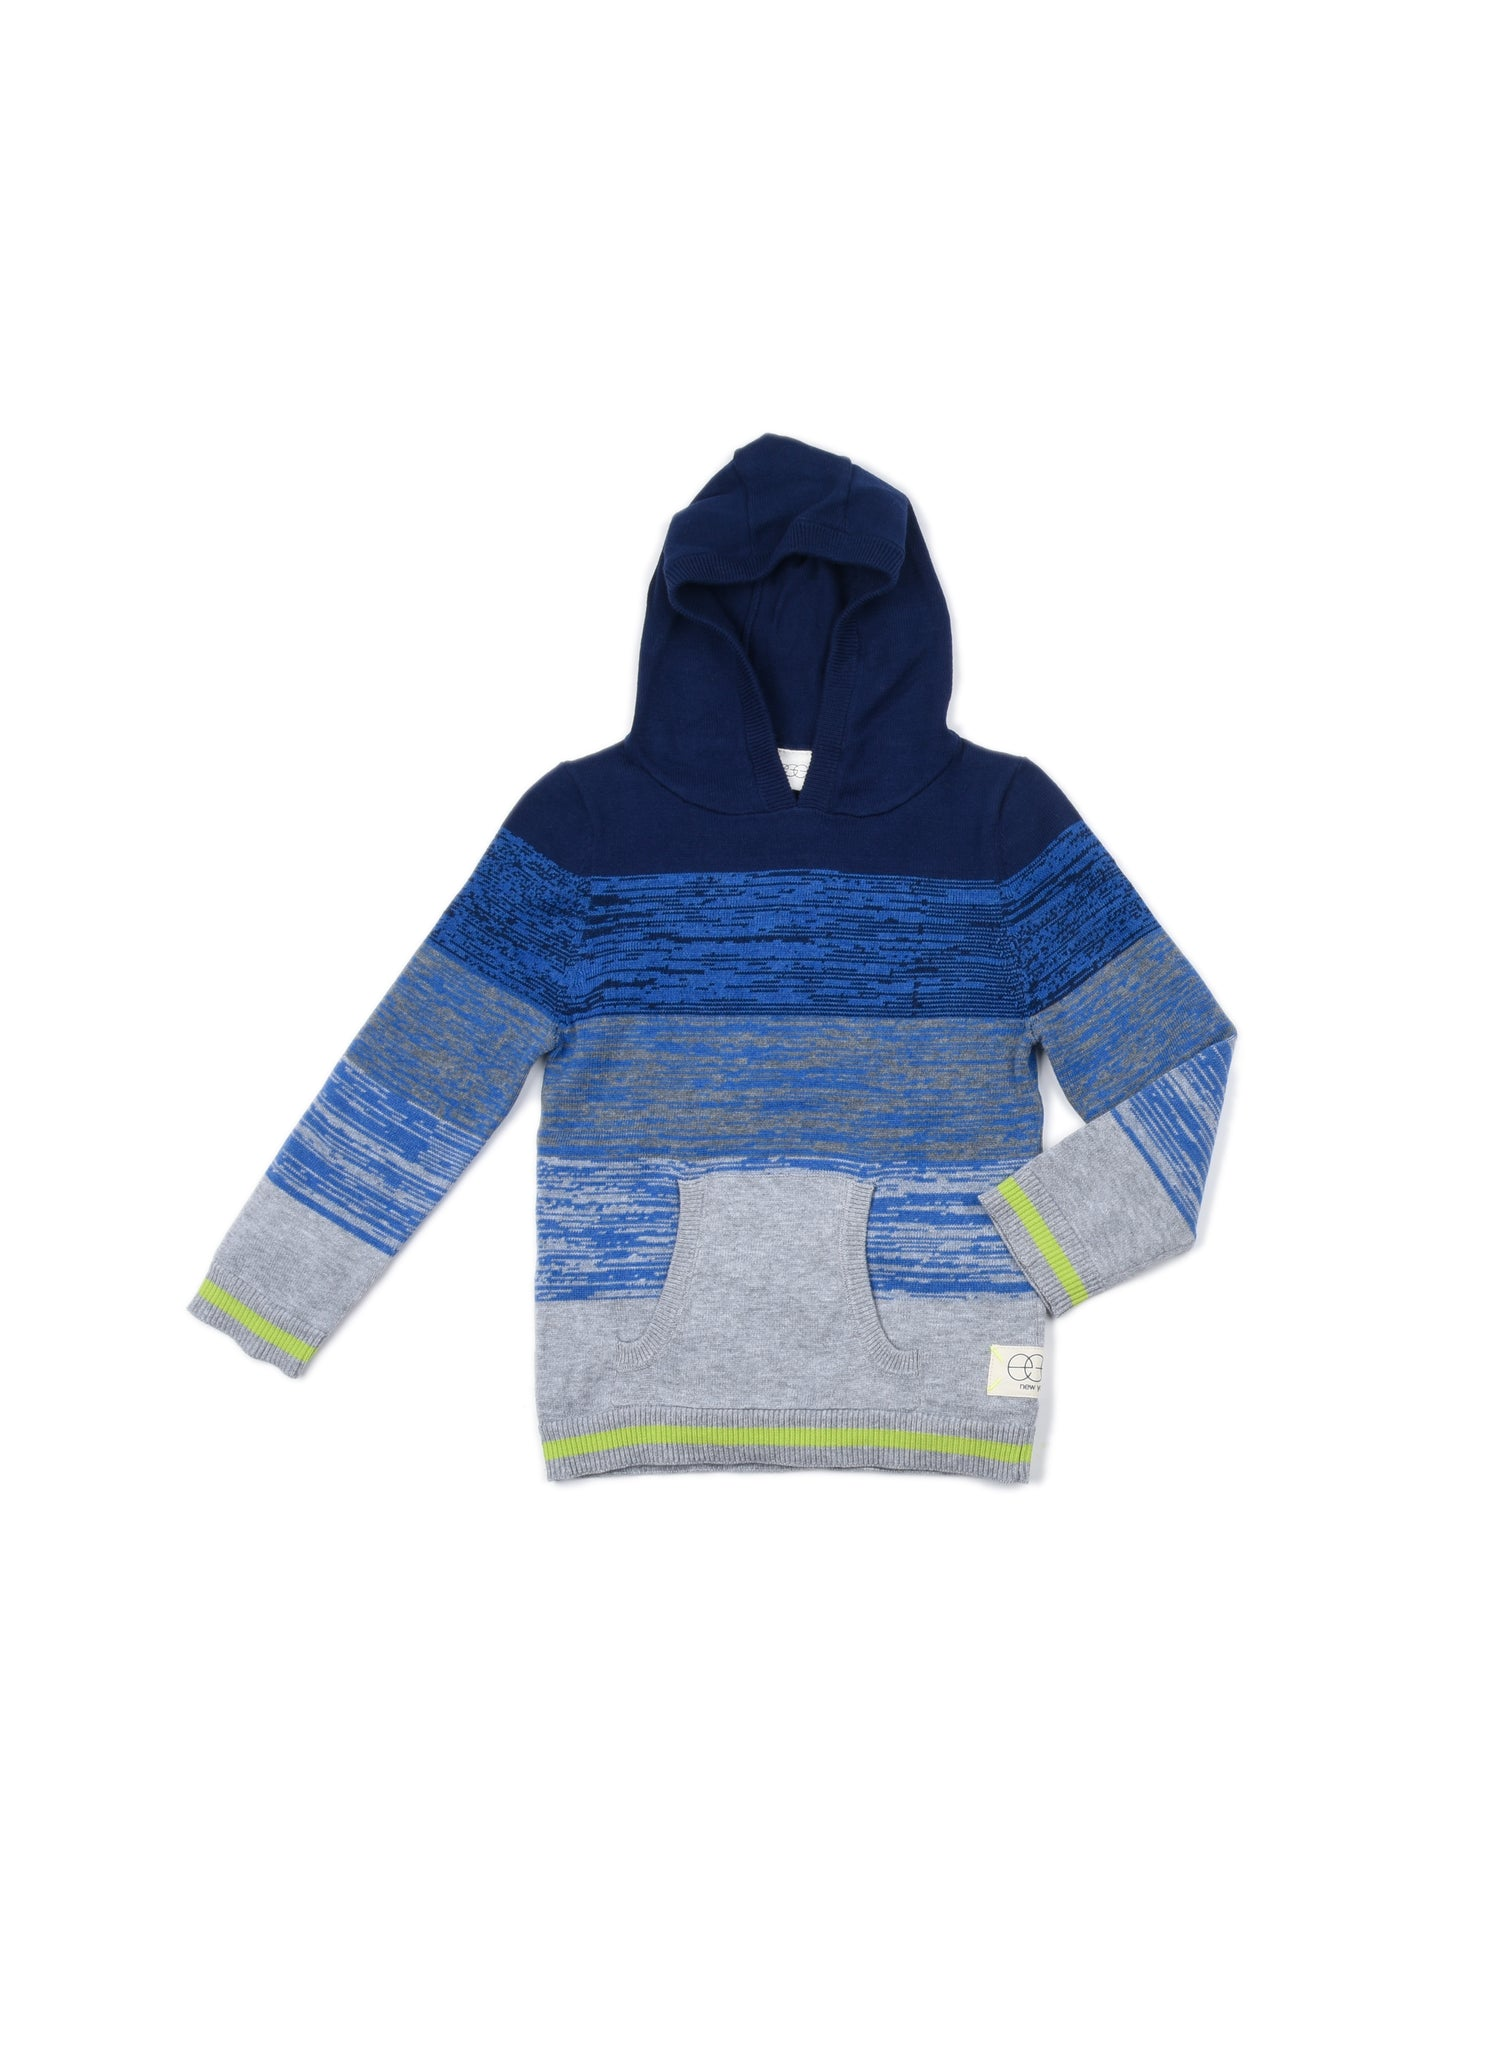 EGG BABY Boys Ombré Striped Hooded Sweater